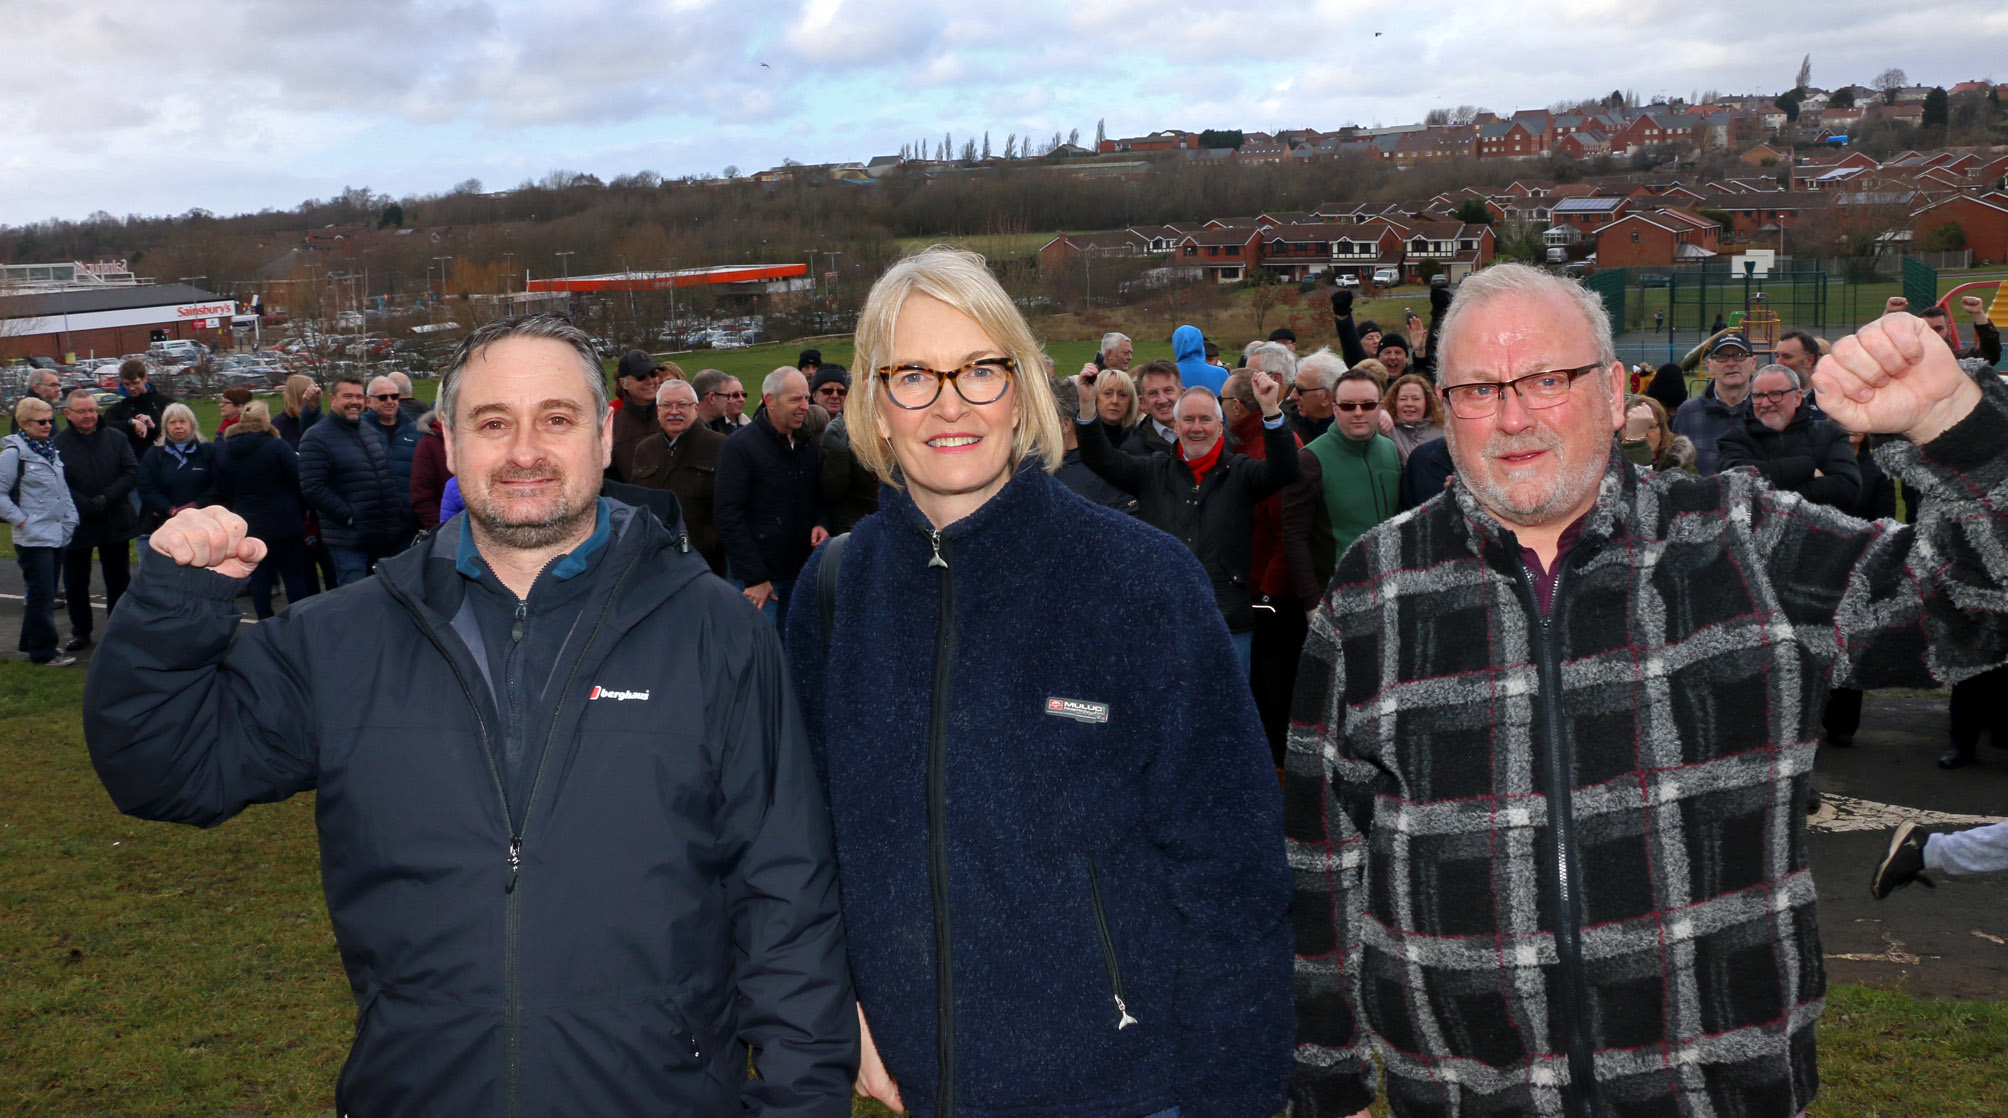 Cllr Paul Bradley, Margot James MP and Tory election hopeful Peter Lee